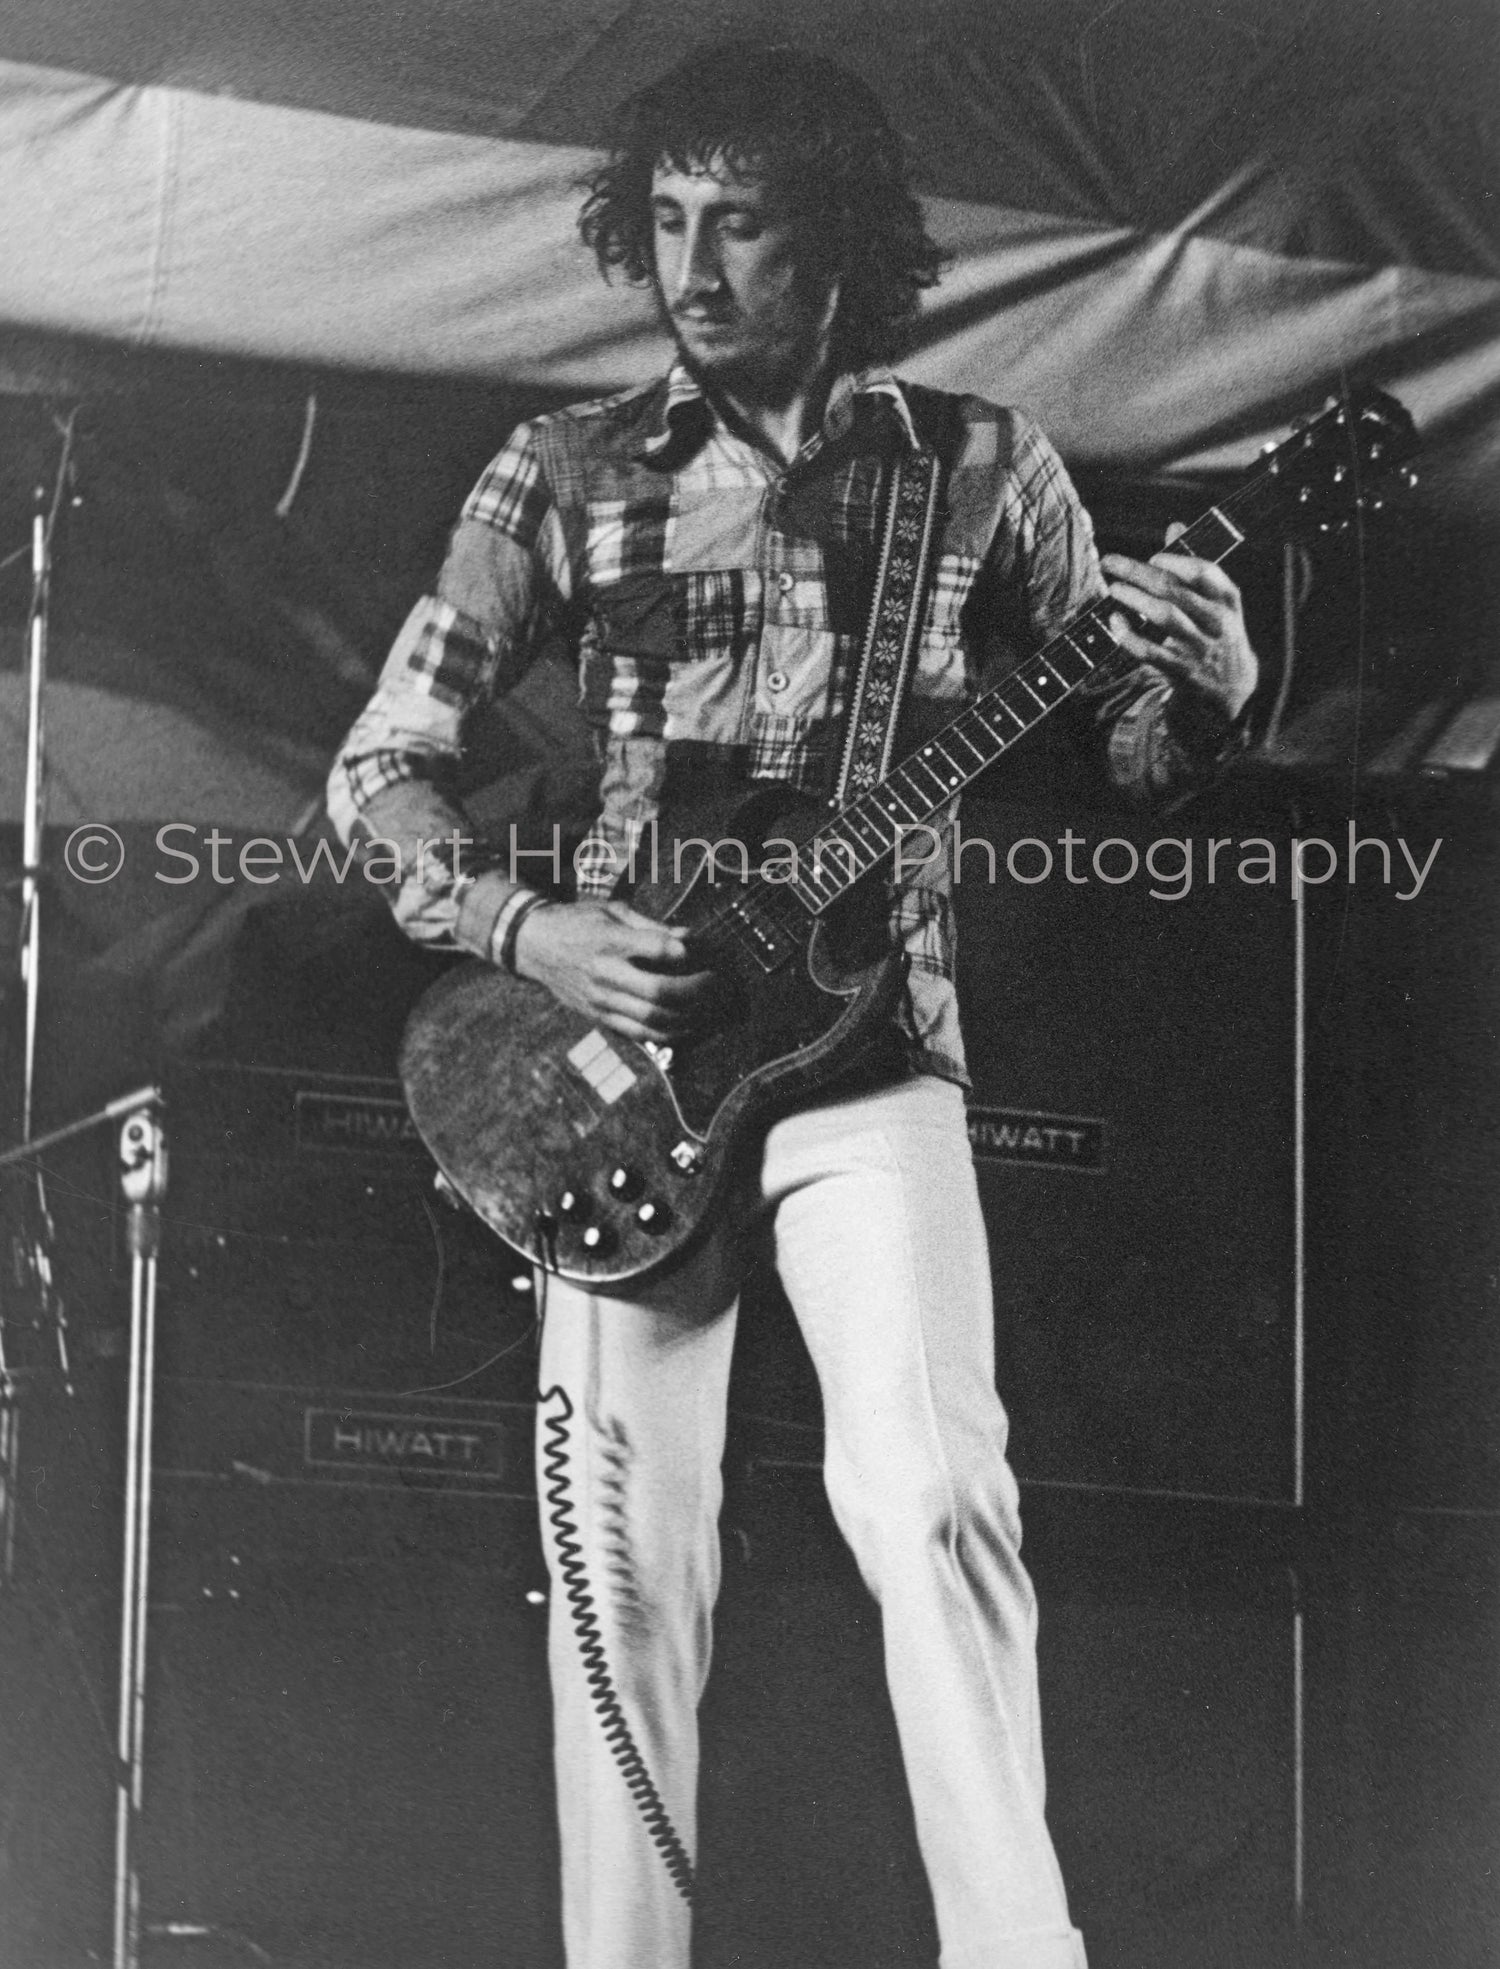 Image of Pete Townshend (The Who, Forest Hills Stadium, 1971) : Limited Edition Fine Art Print #1